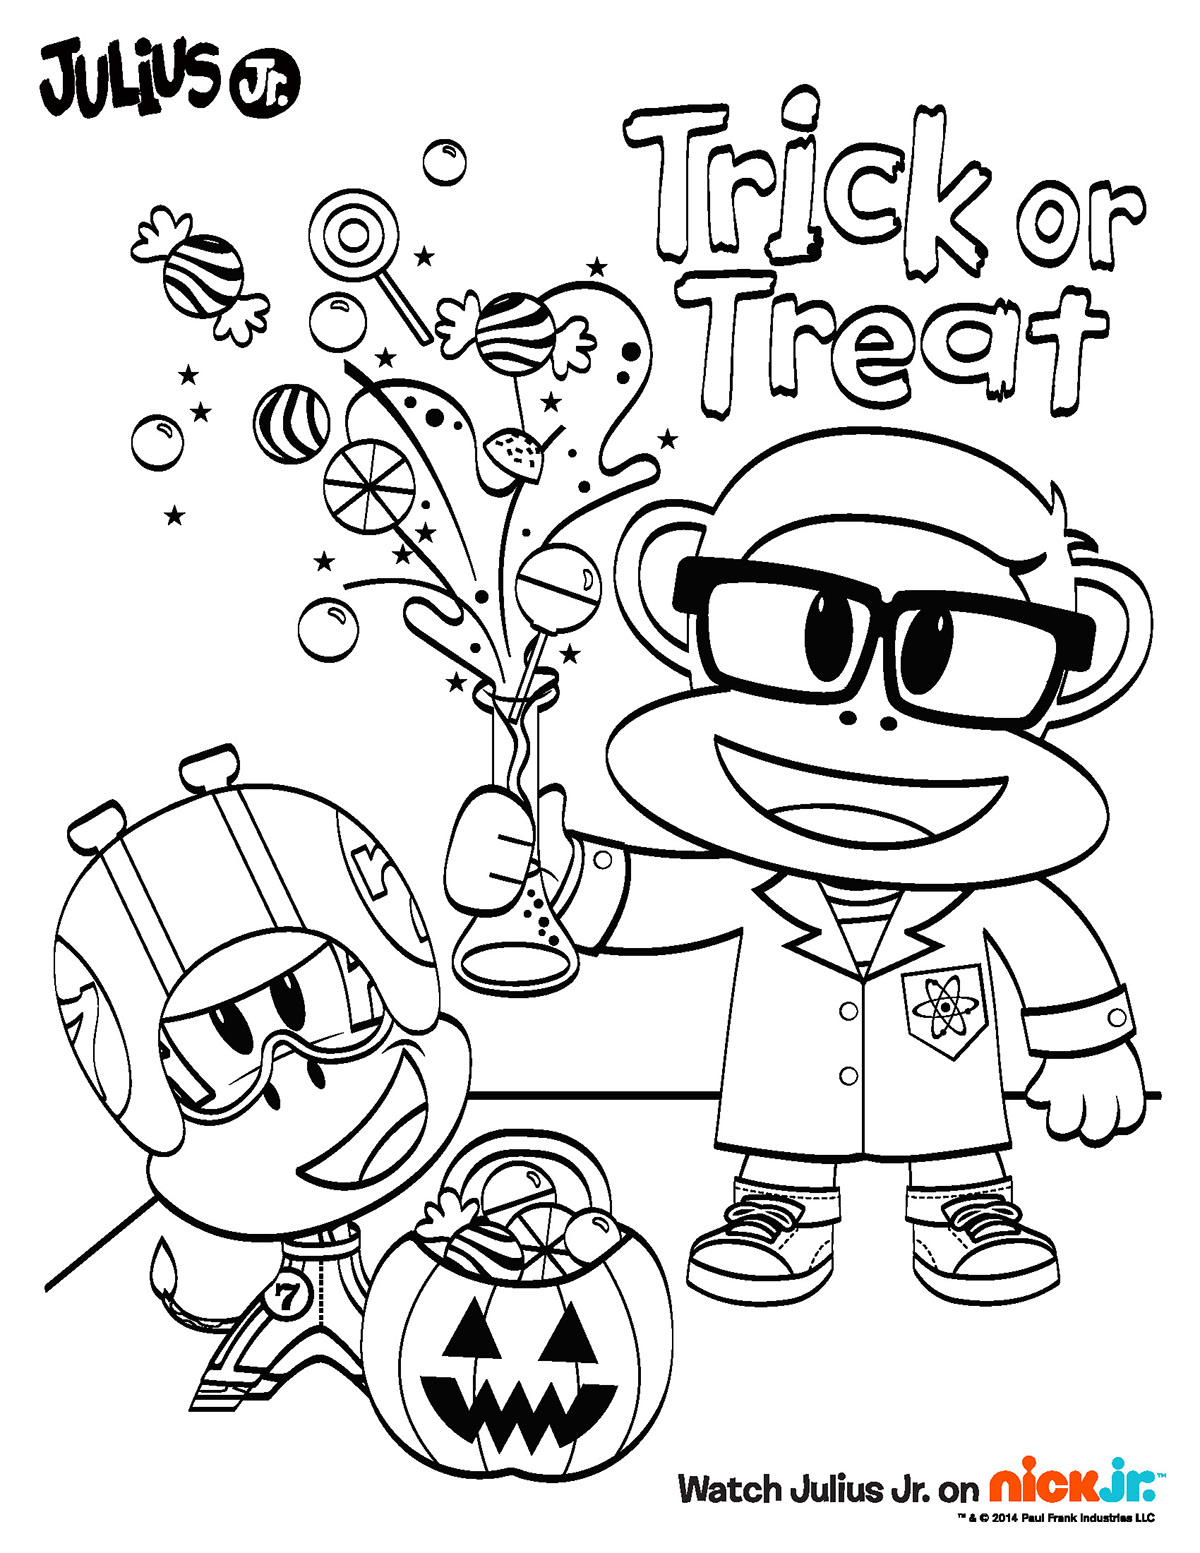 nickelodeon halloween coloring pages - photo#28